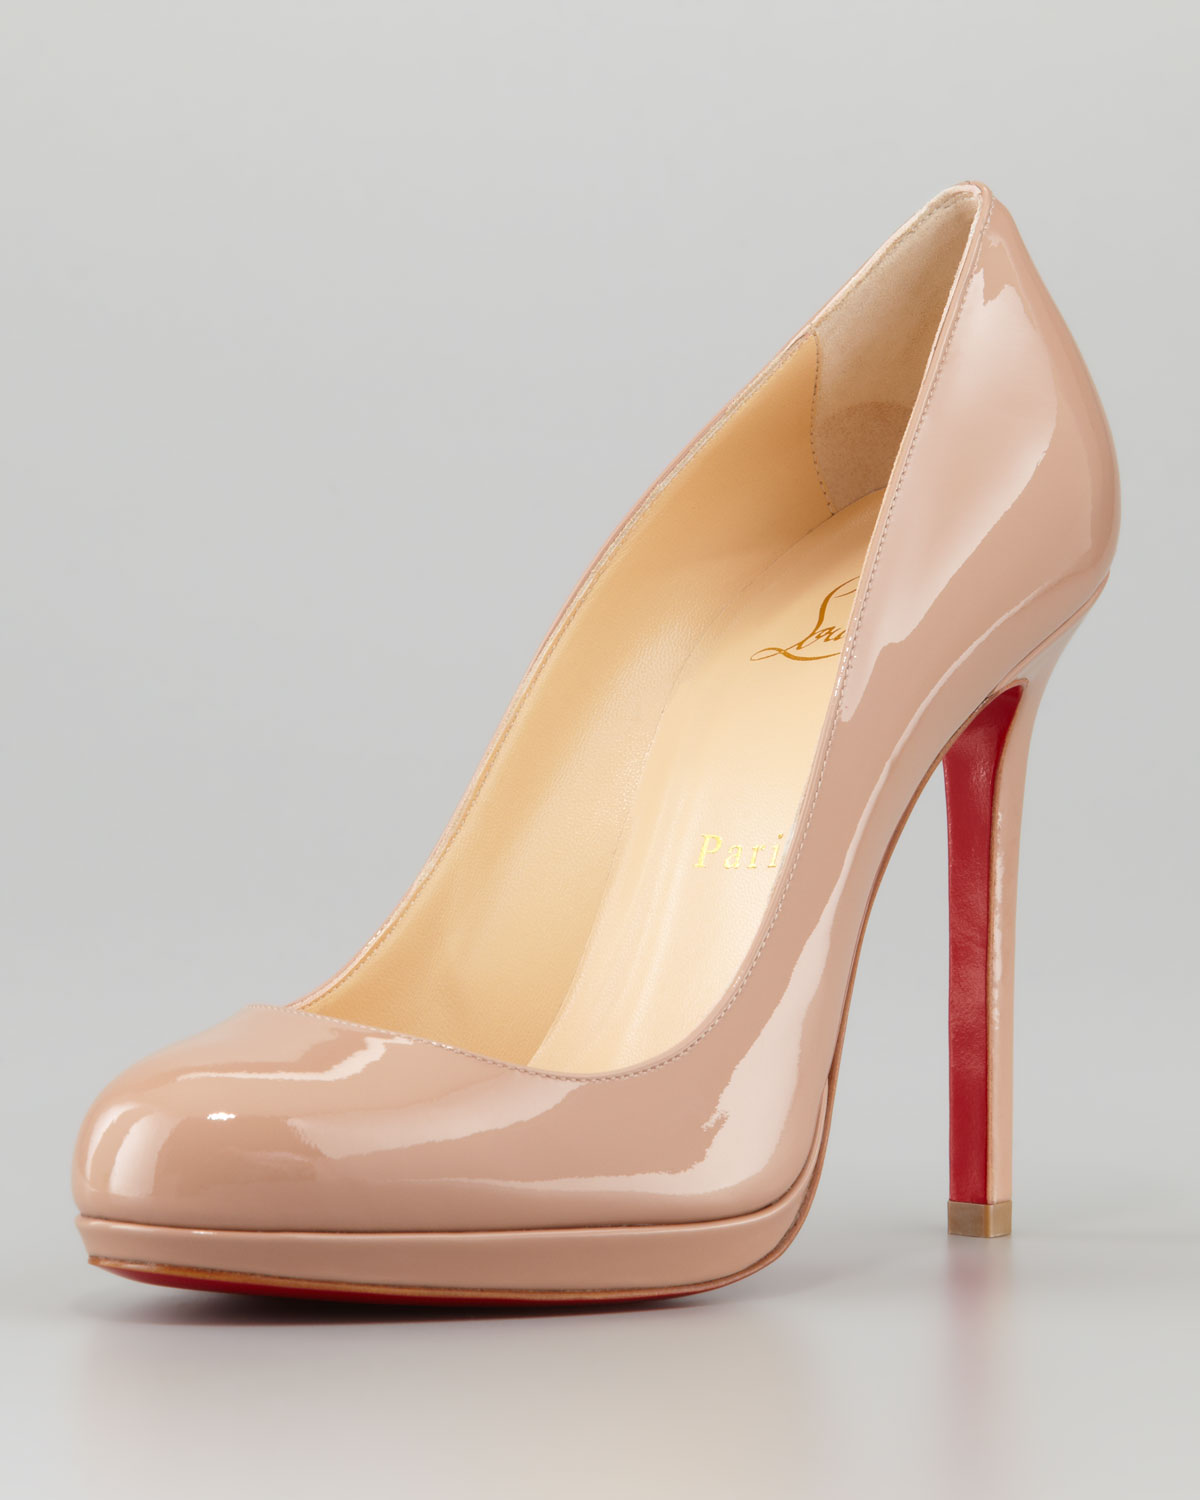 09f8b091eaf3 Christian Louboutin - Natural Neofilo Patent Roundtoe Red Sole Pump Nude -  Lyst